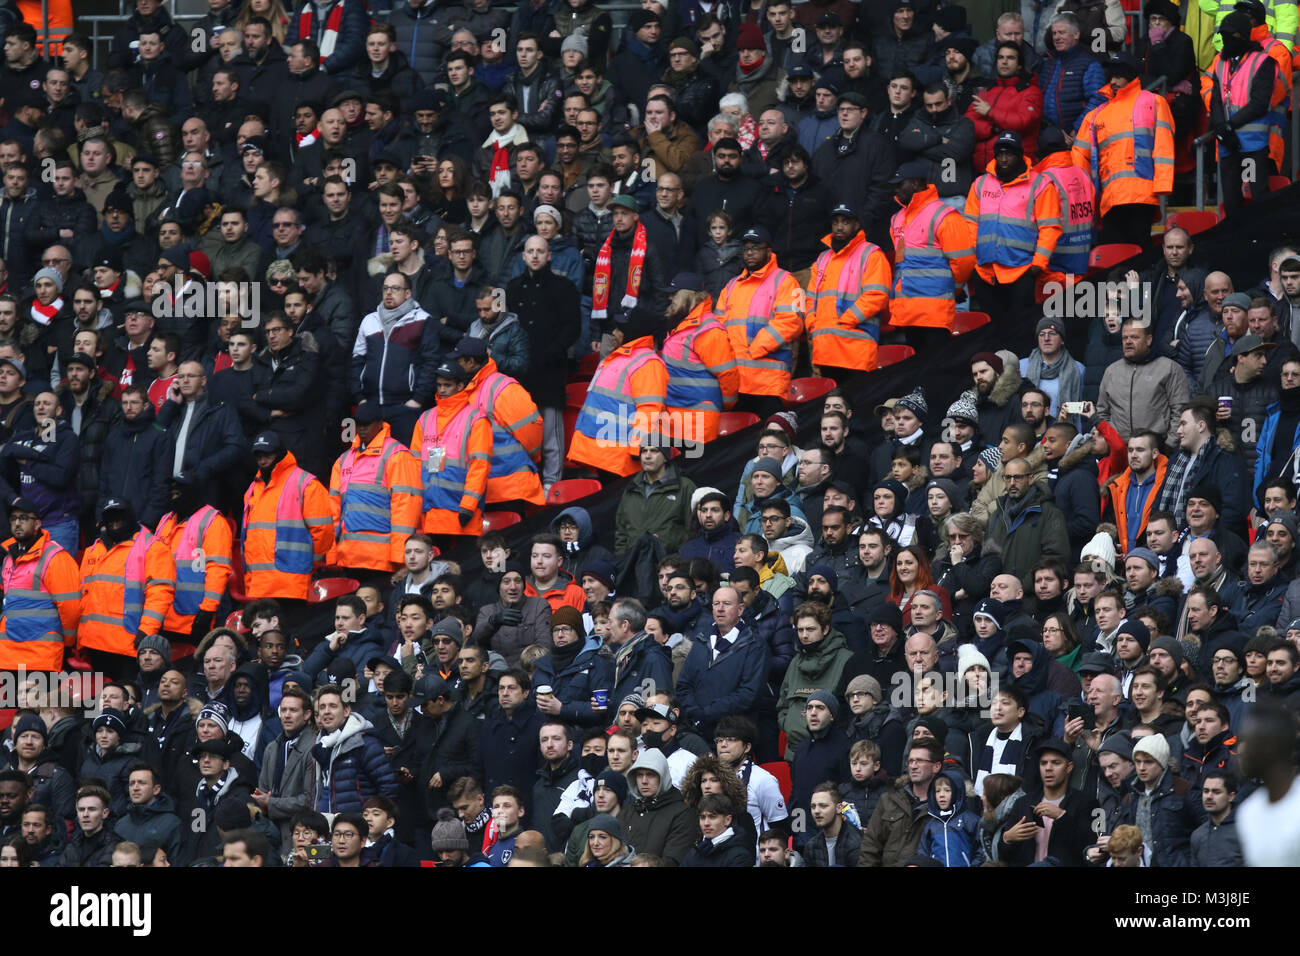 V In Line Fans : Arsenal fans stock photos images alamy